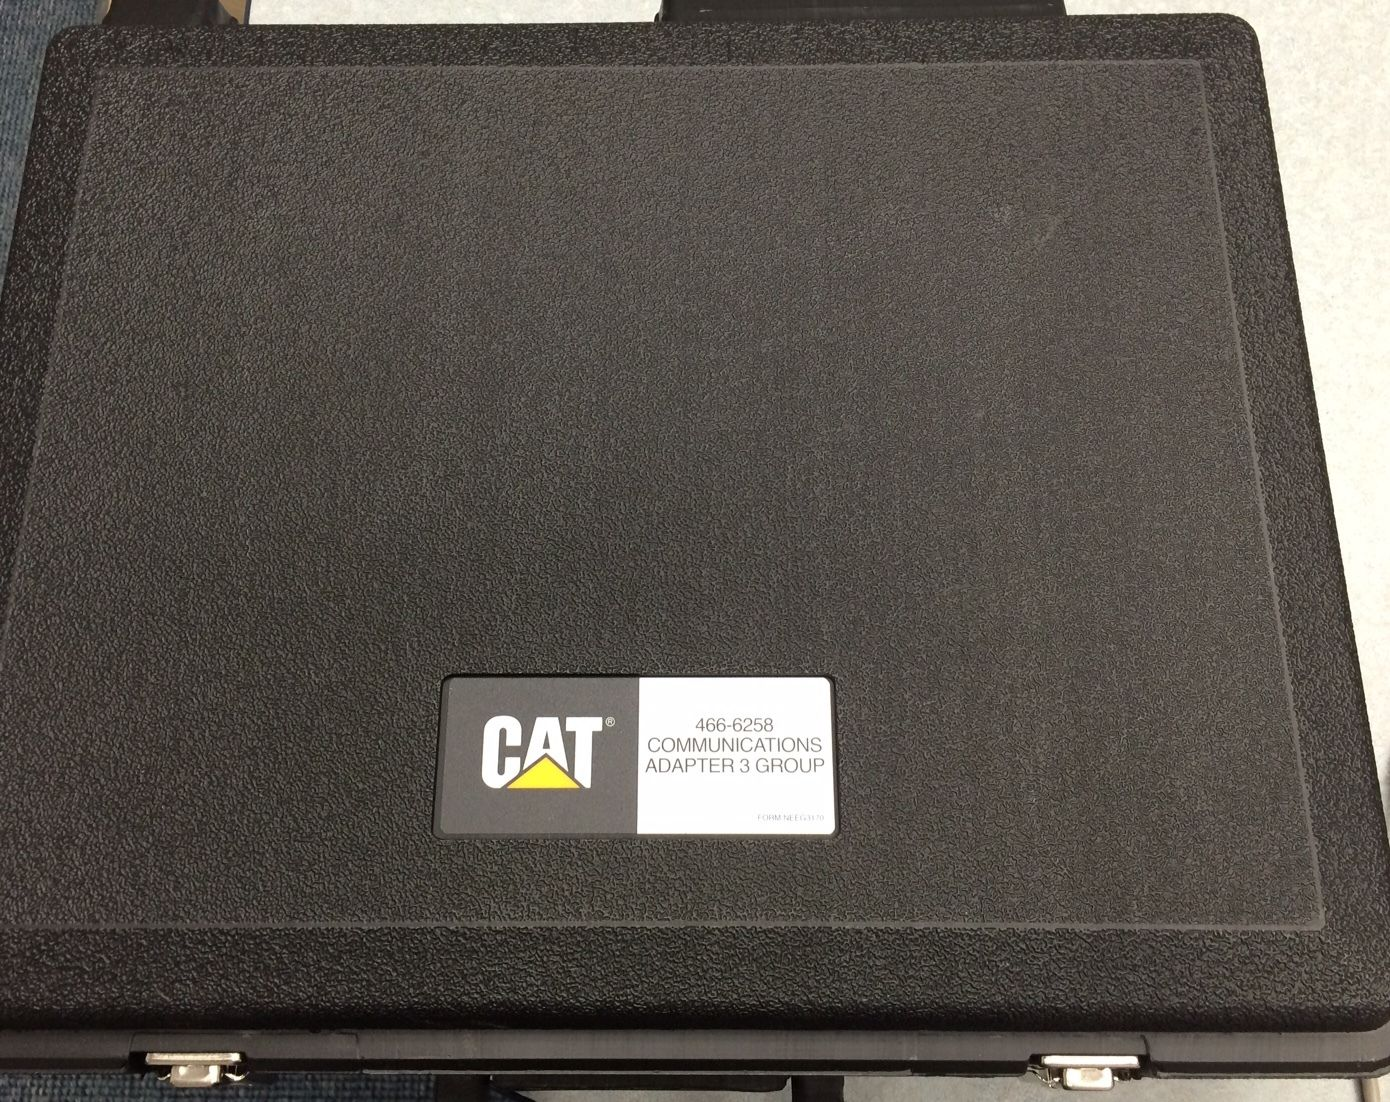 Caterpillar-Communication-Adapter-III-Kit-8